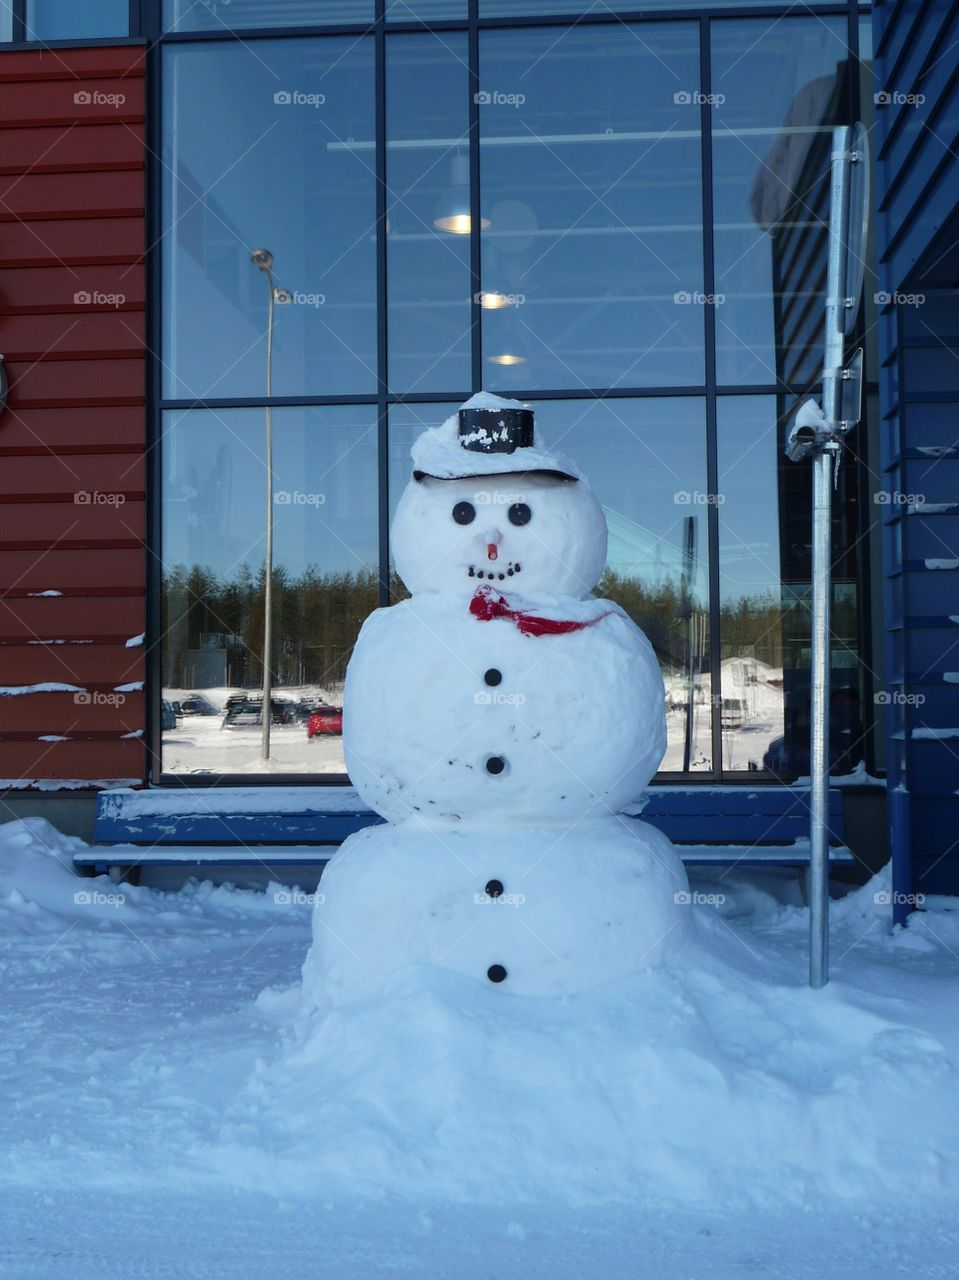 Snowman in front of an Airport